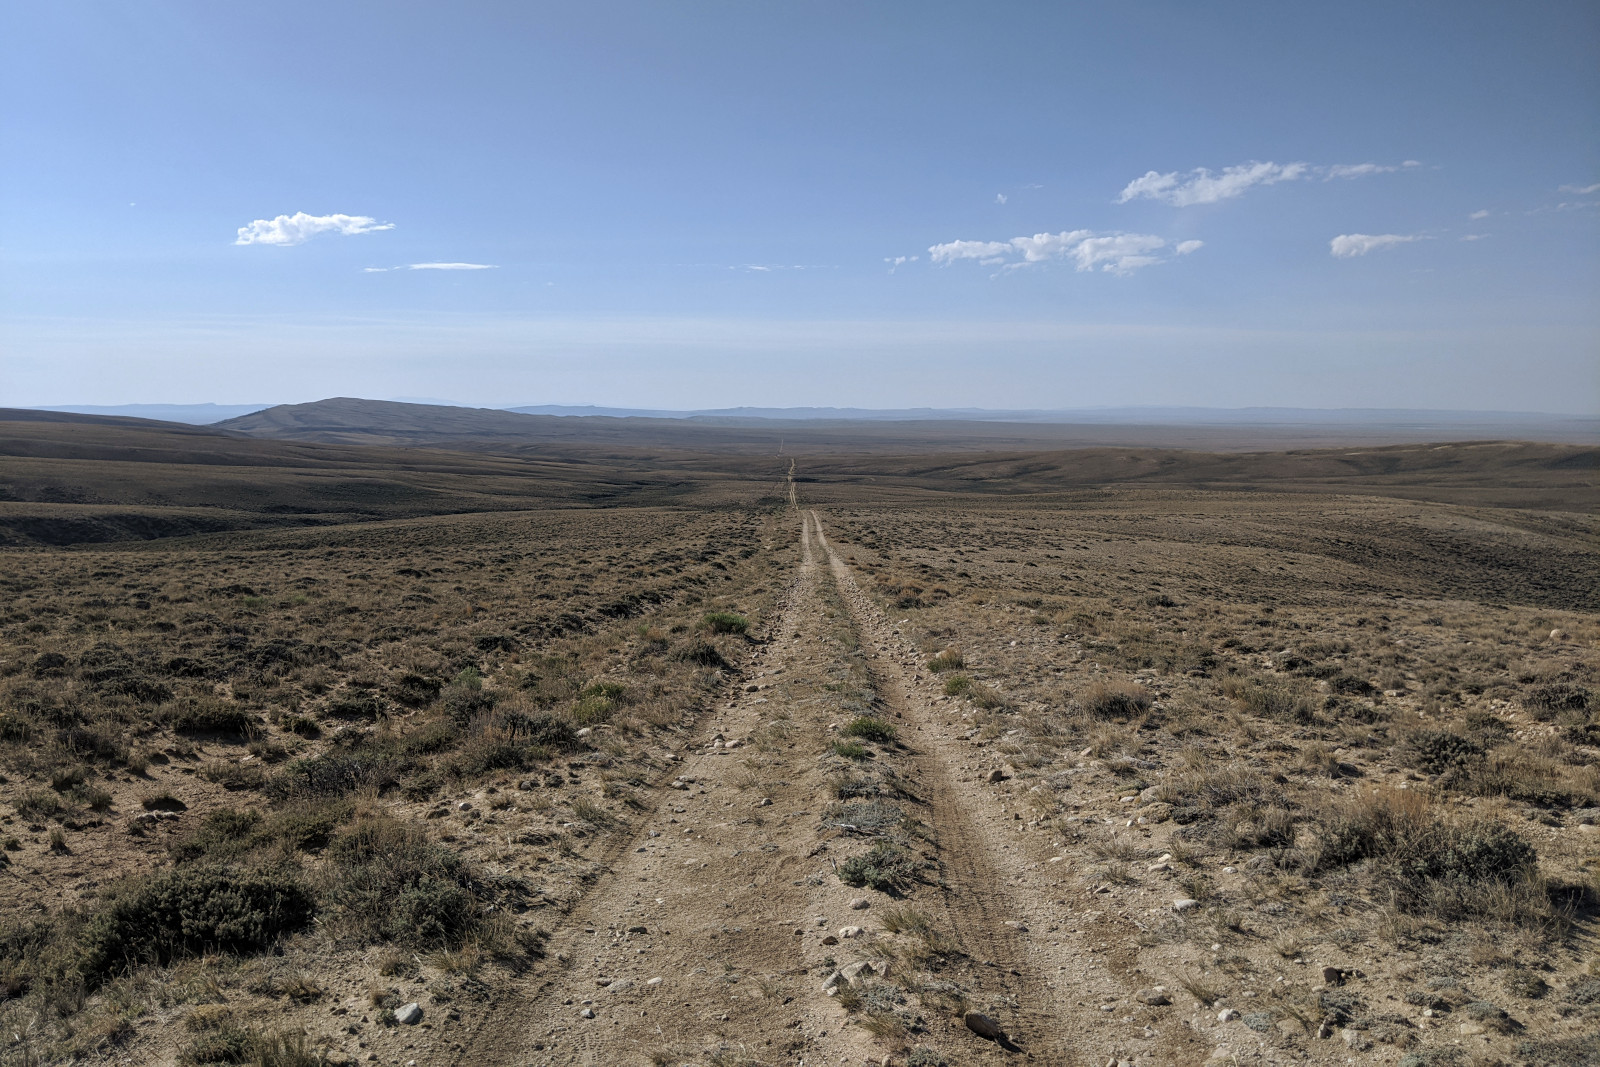 View of the CDT between South Pass and Rawlins, Wyoming